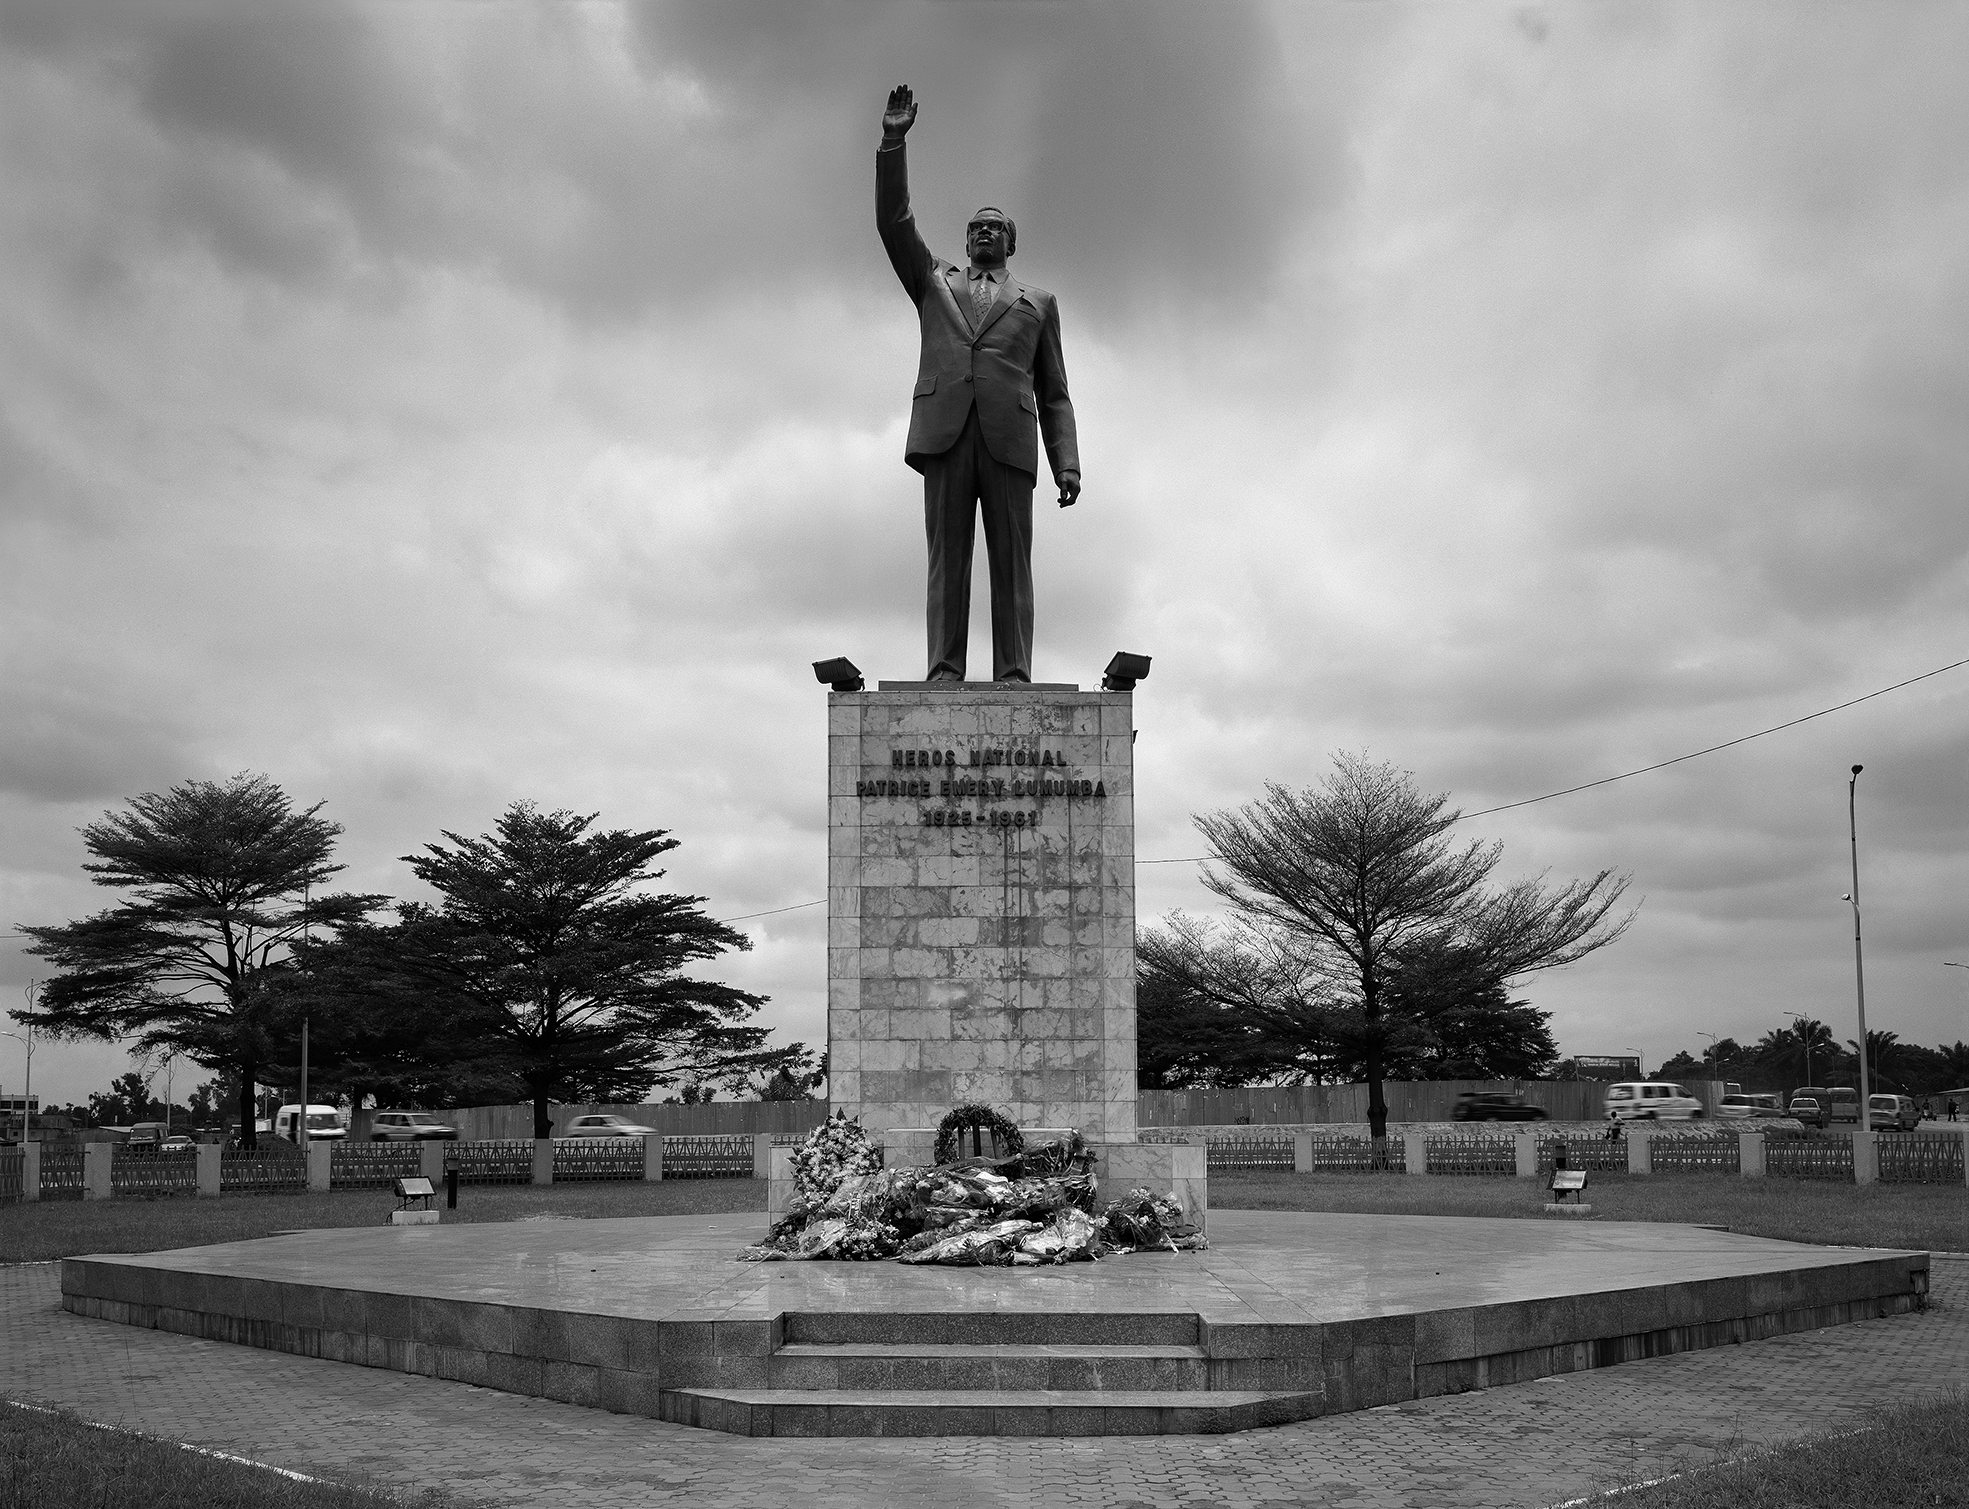 Onejoon-Che-Statue-of-Patrice-Lumumba-built-by-North-Korea-in-2002-Kinshasa-DR-Congo-2013